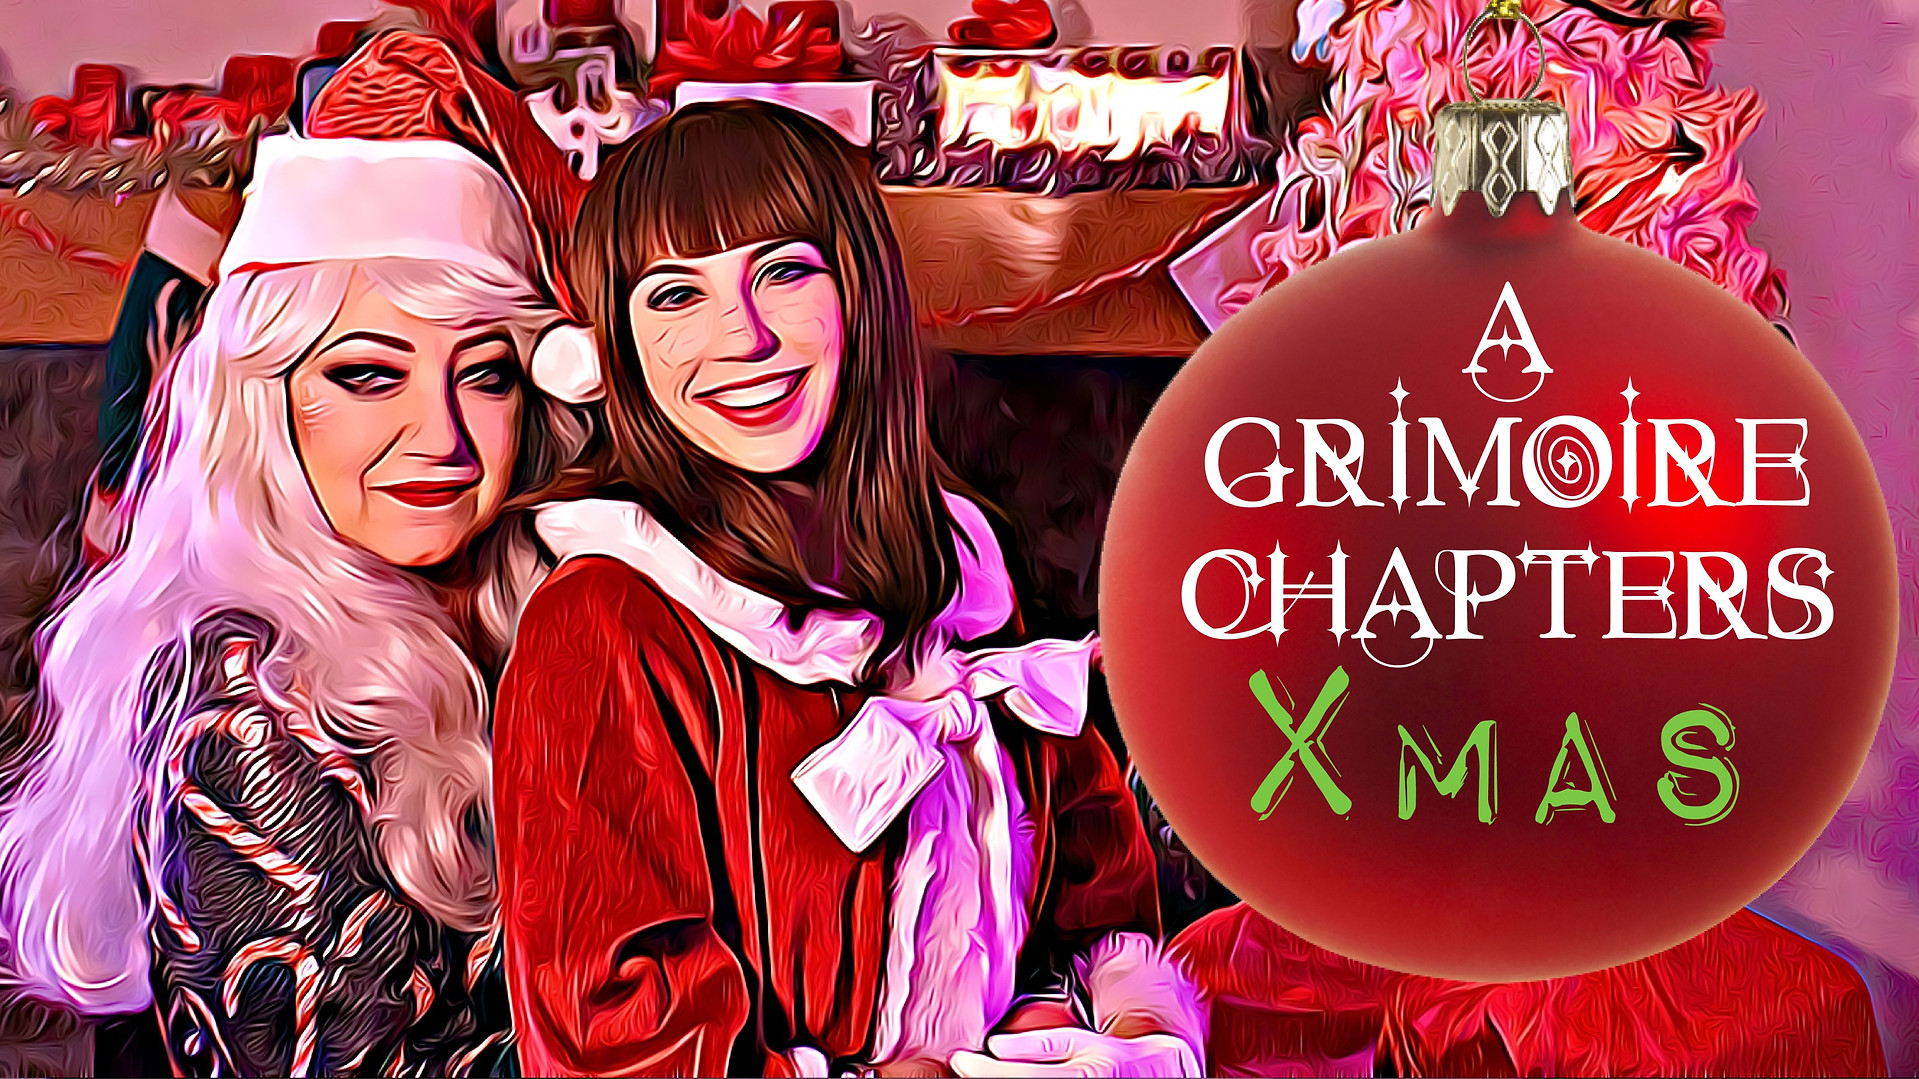 A Grimoire Chapters Xmas